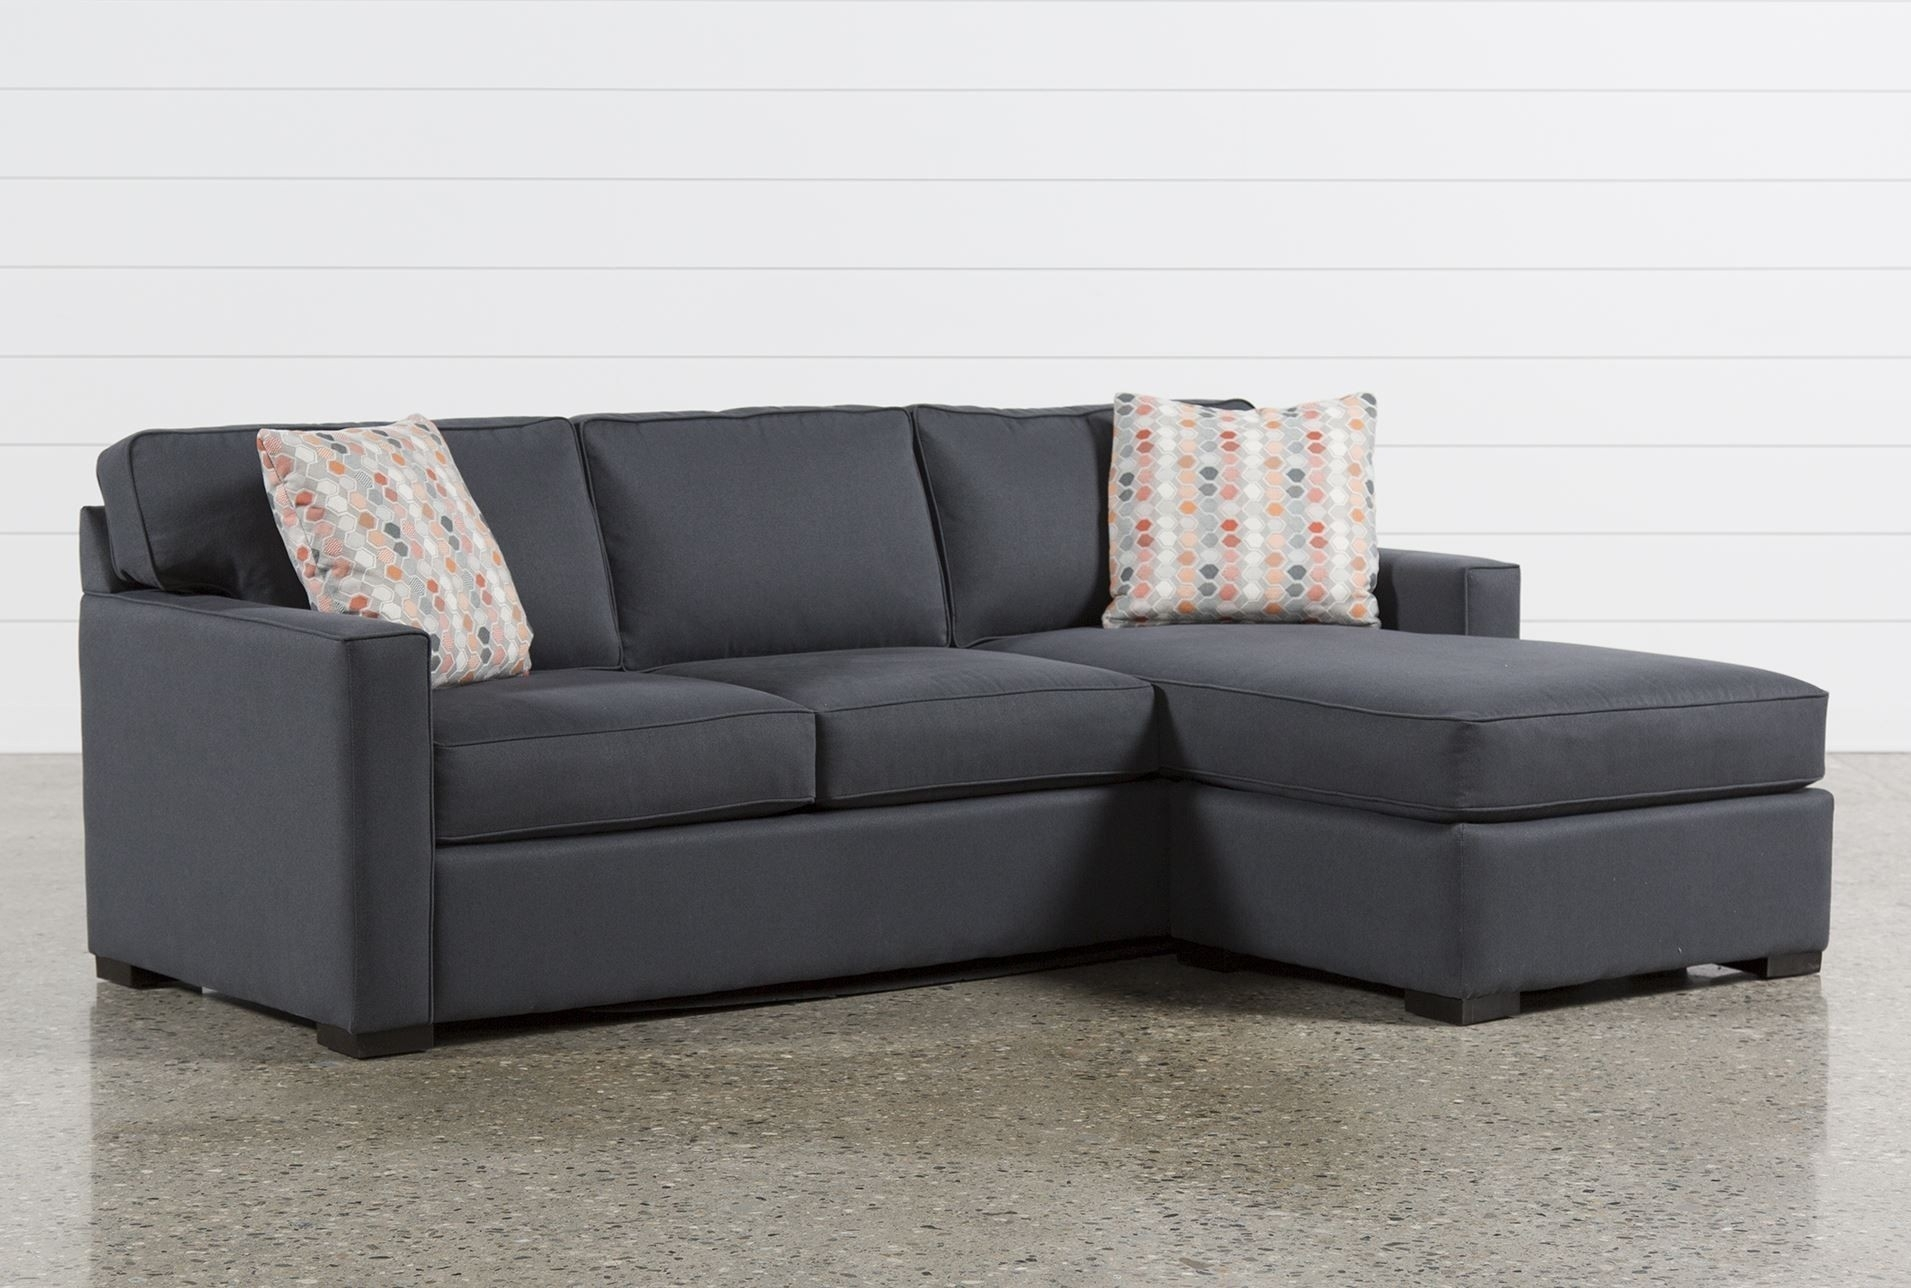 Living Spaces Sectional Sofas Luxury Elegant Corbin 3 Piece W Raf pertaining to Harper Foam 3 Piece Sectionals With Raf Chaise (Image 14 of 30)